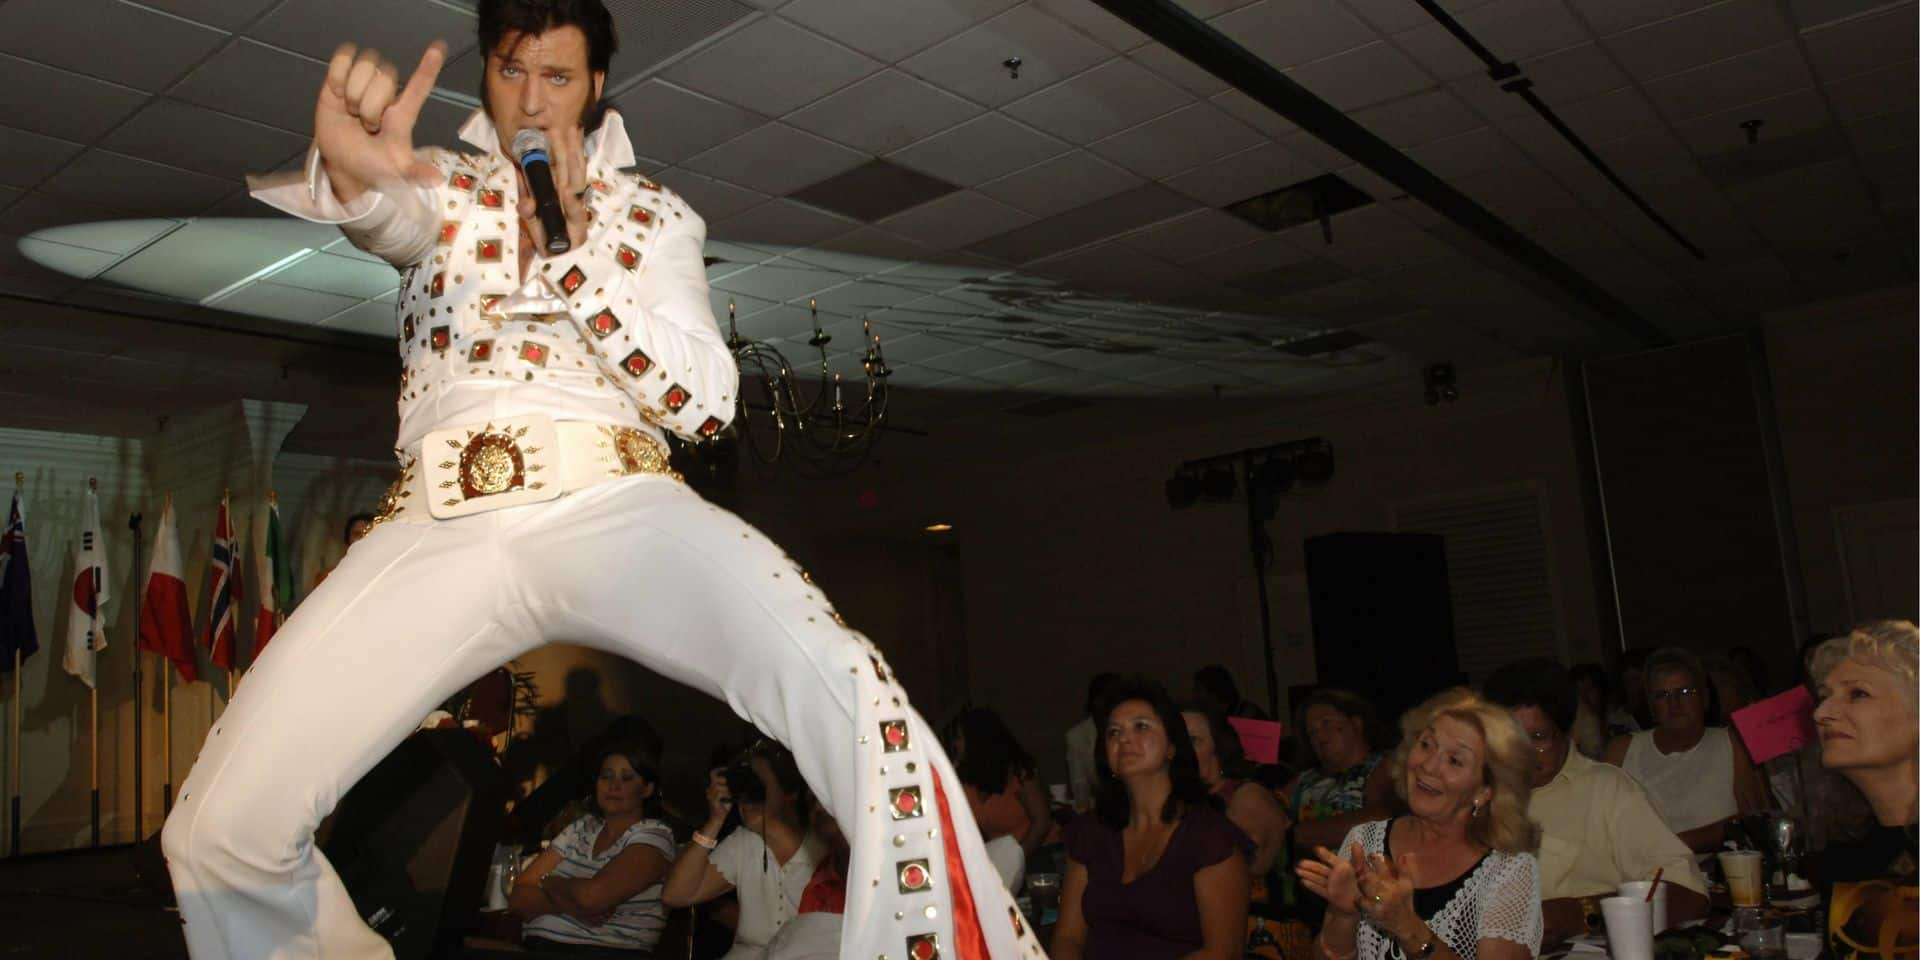 Elvis competition